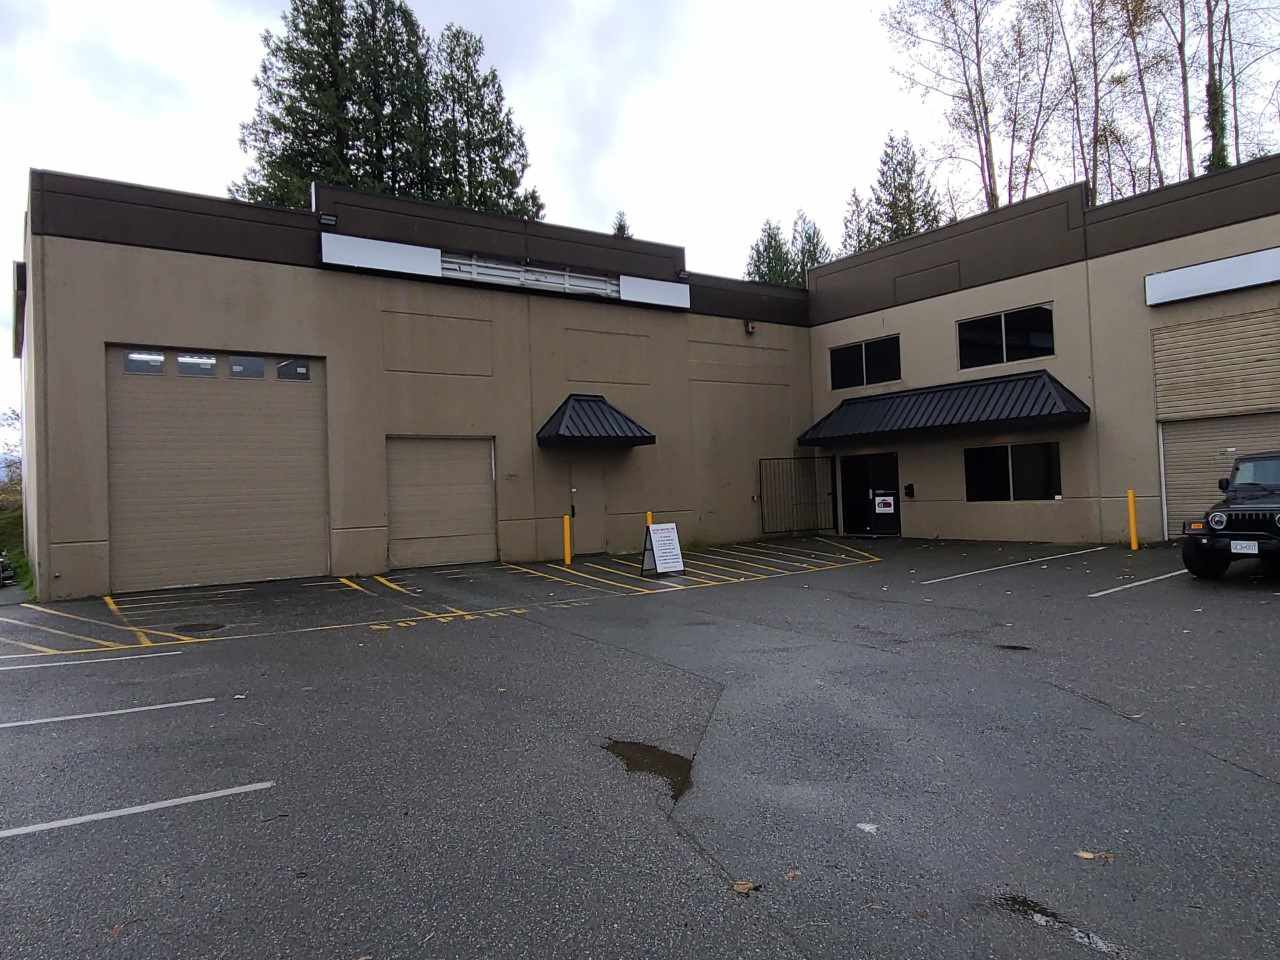 Main Photo: 14 34100 SOUTH FRASER Way in Abbotsford: Central Abbotsford Industrial for sale : MLS®# C8036039